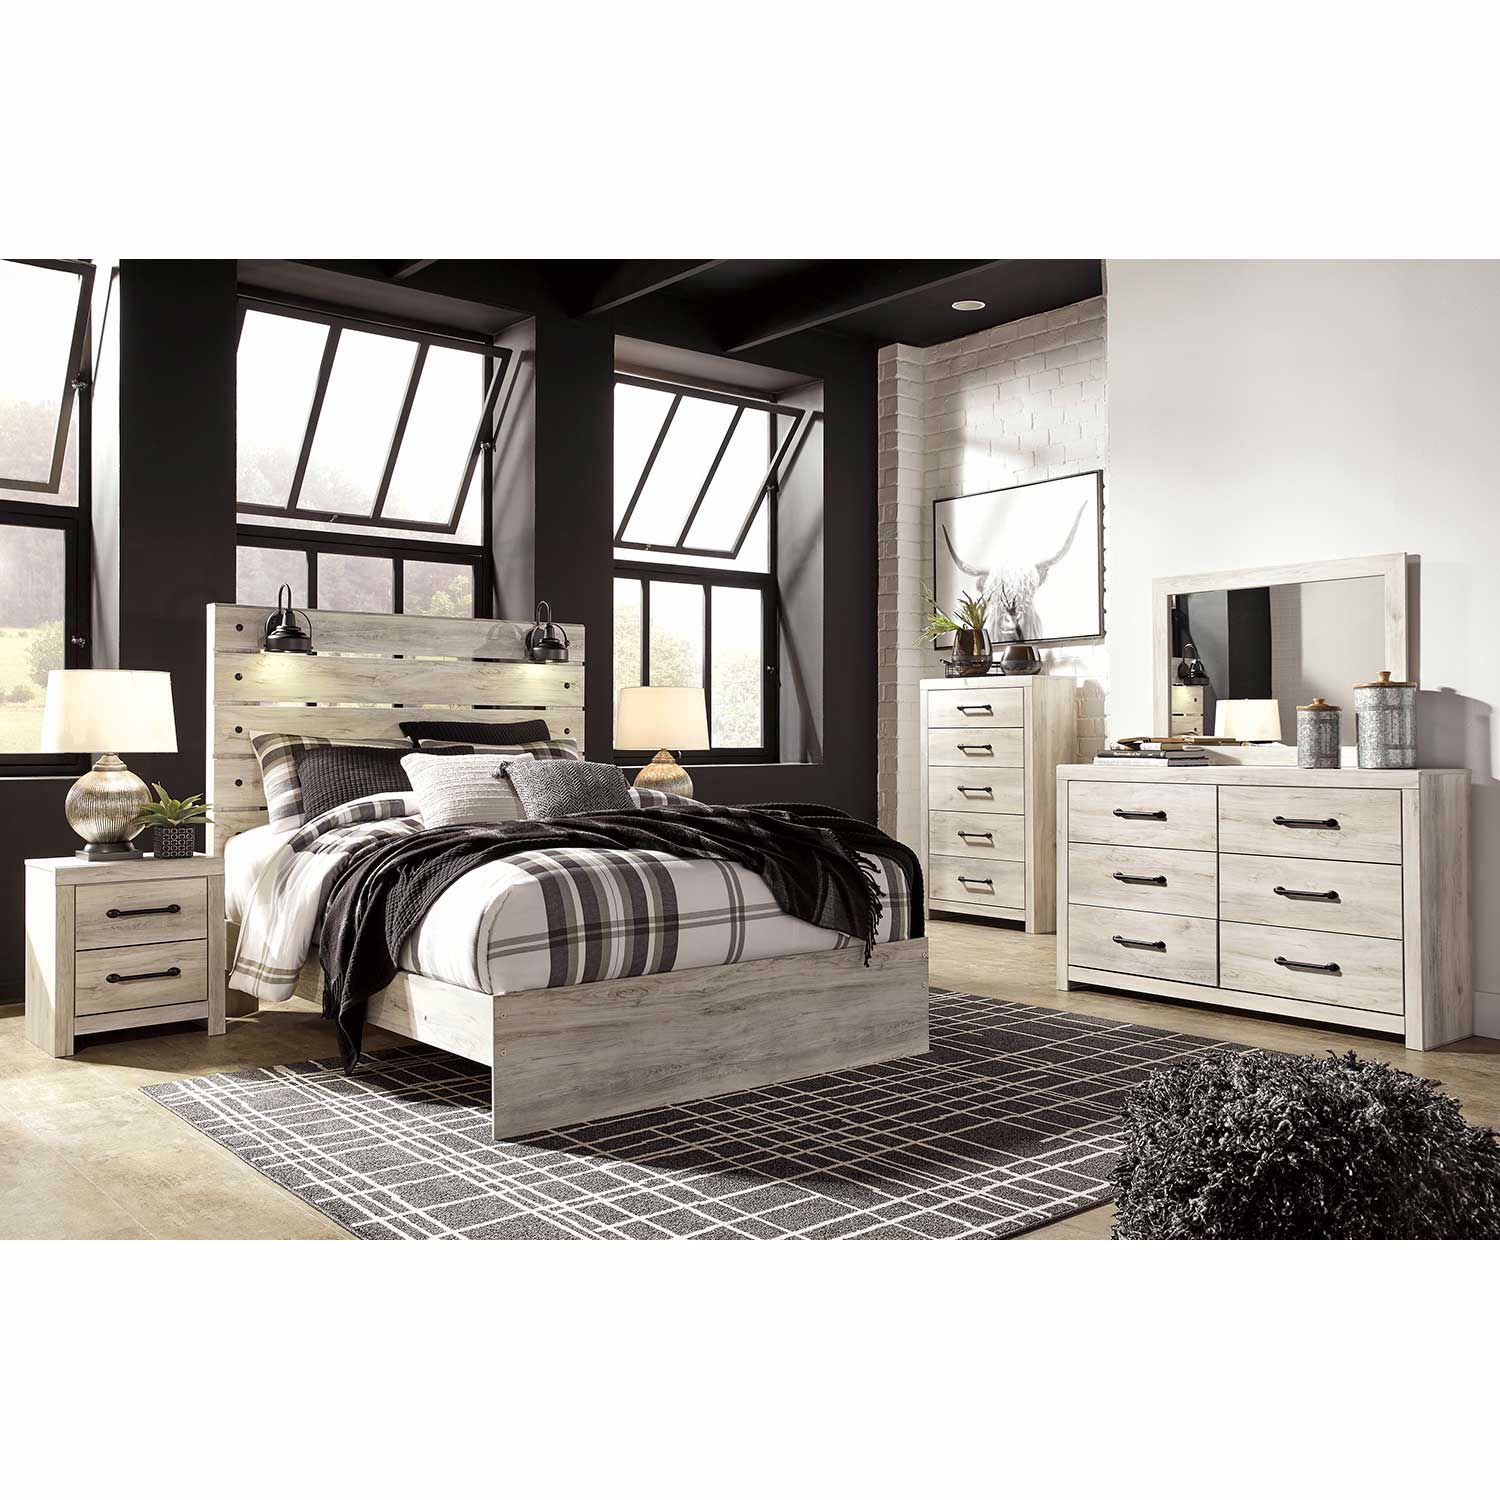 Picture of Cambeck Drawer Dresser